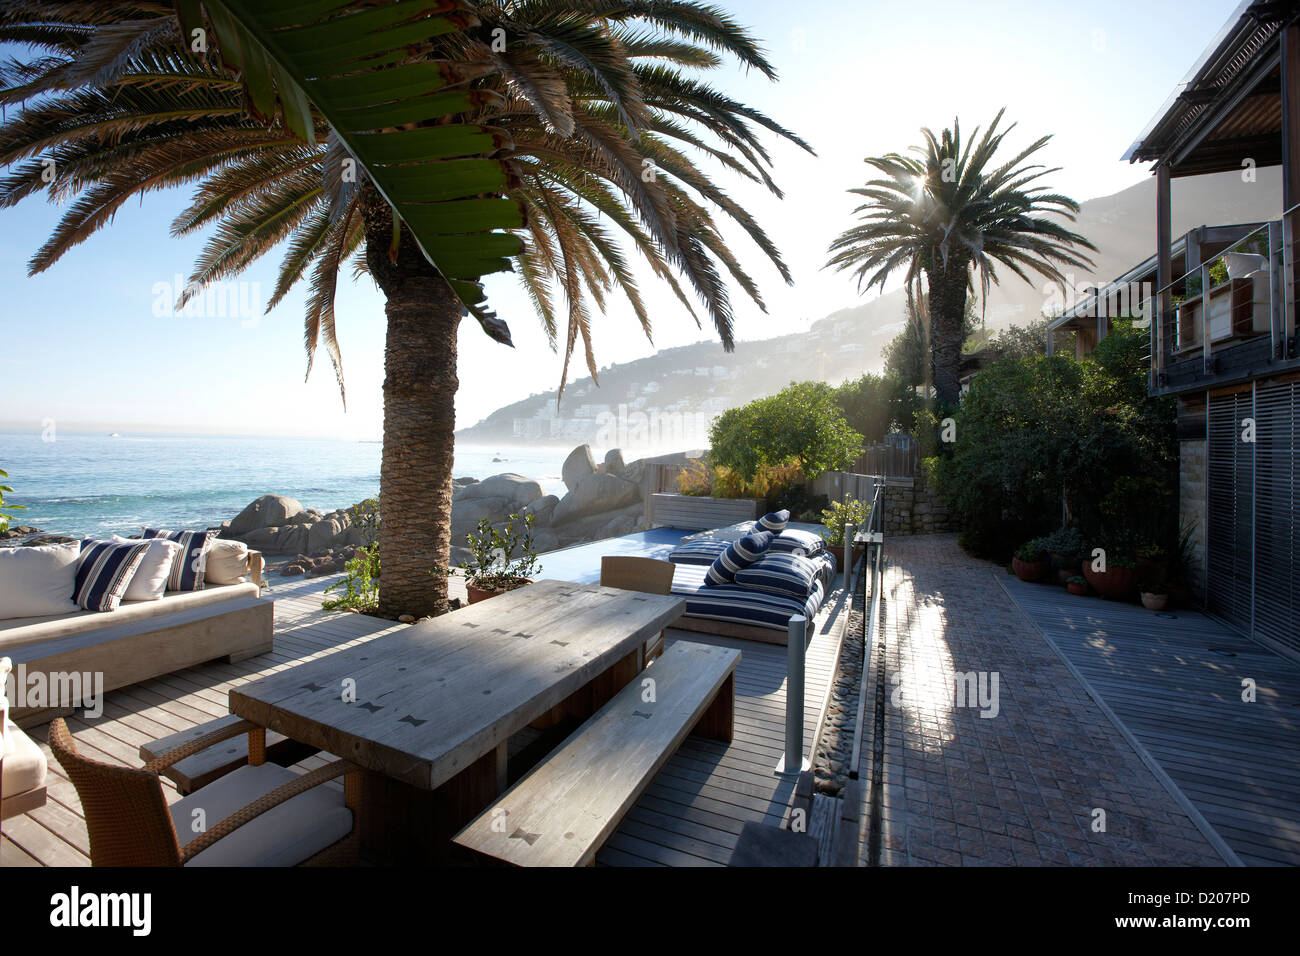 Deserted terrace with seaview, Clifton 4th beach, Atlantic Seaboard, Cape Town, South Africa, Africa - Stock Image